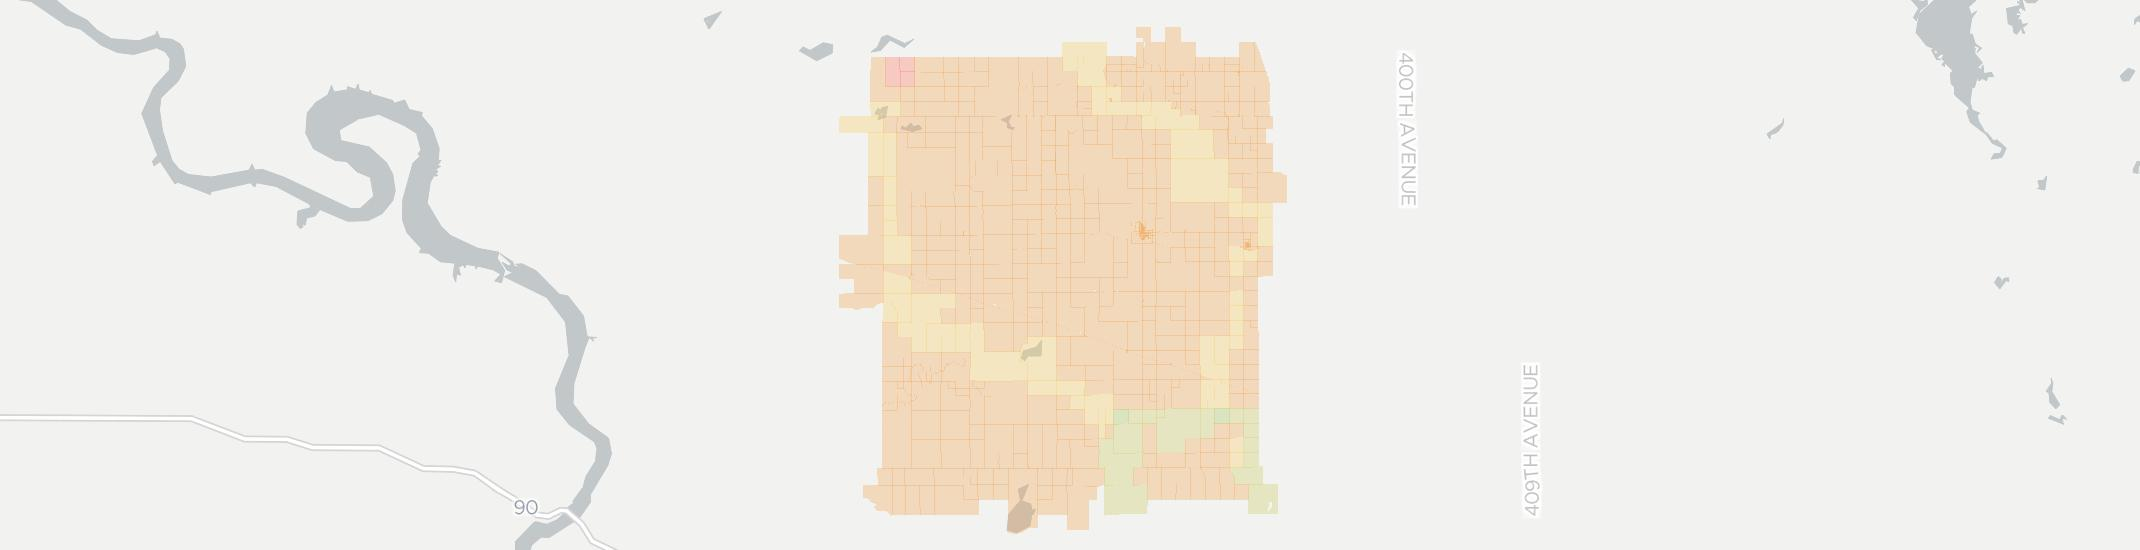 Wessington Springs Internet Competition Map. Click for interactive map.